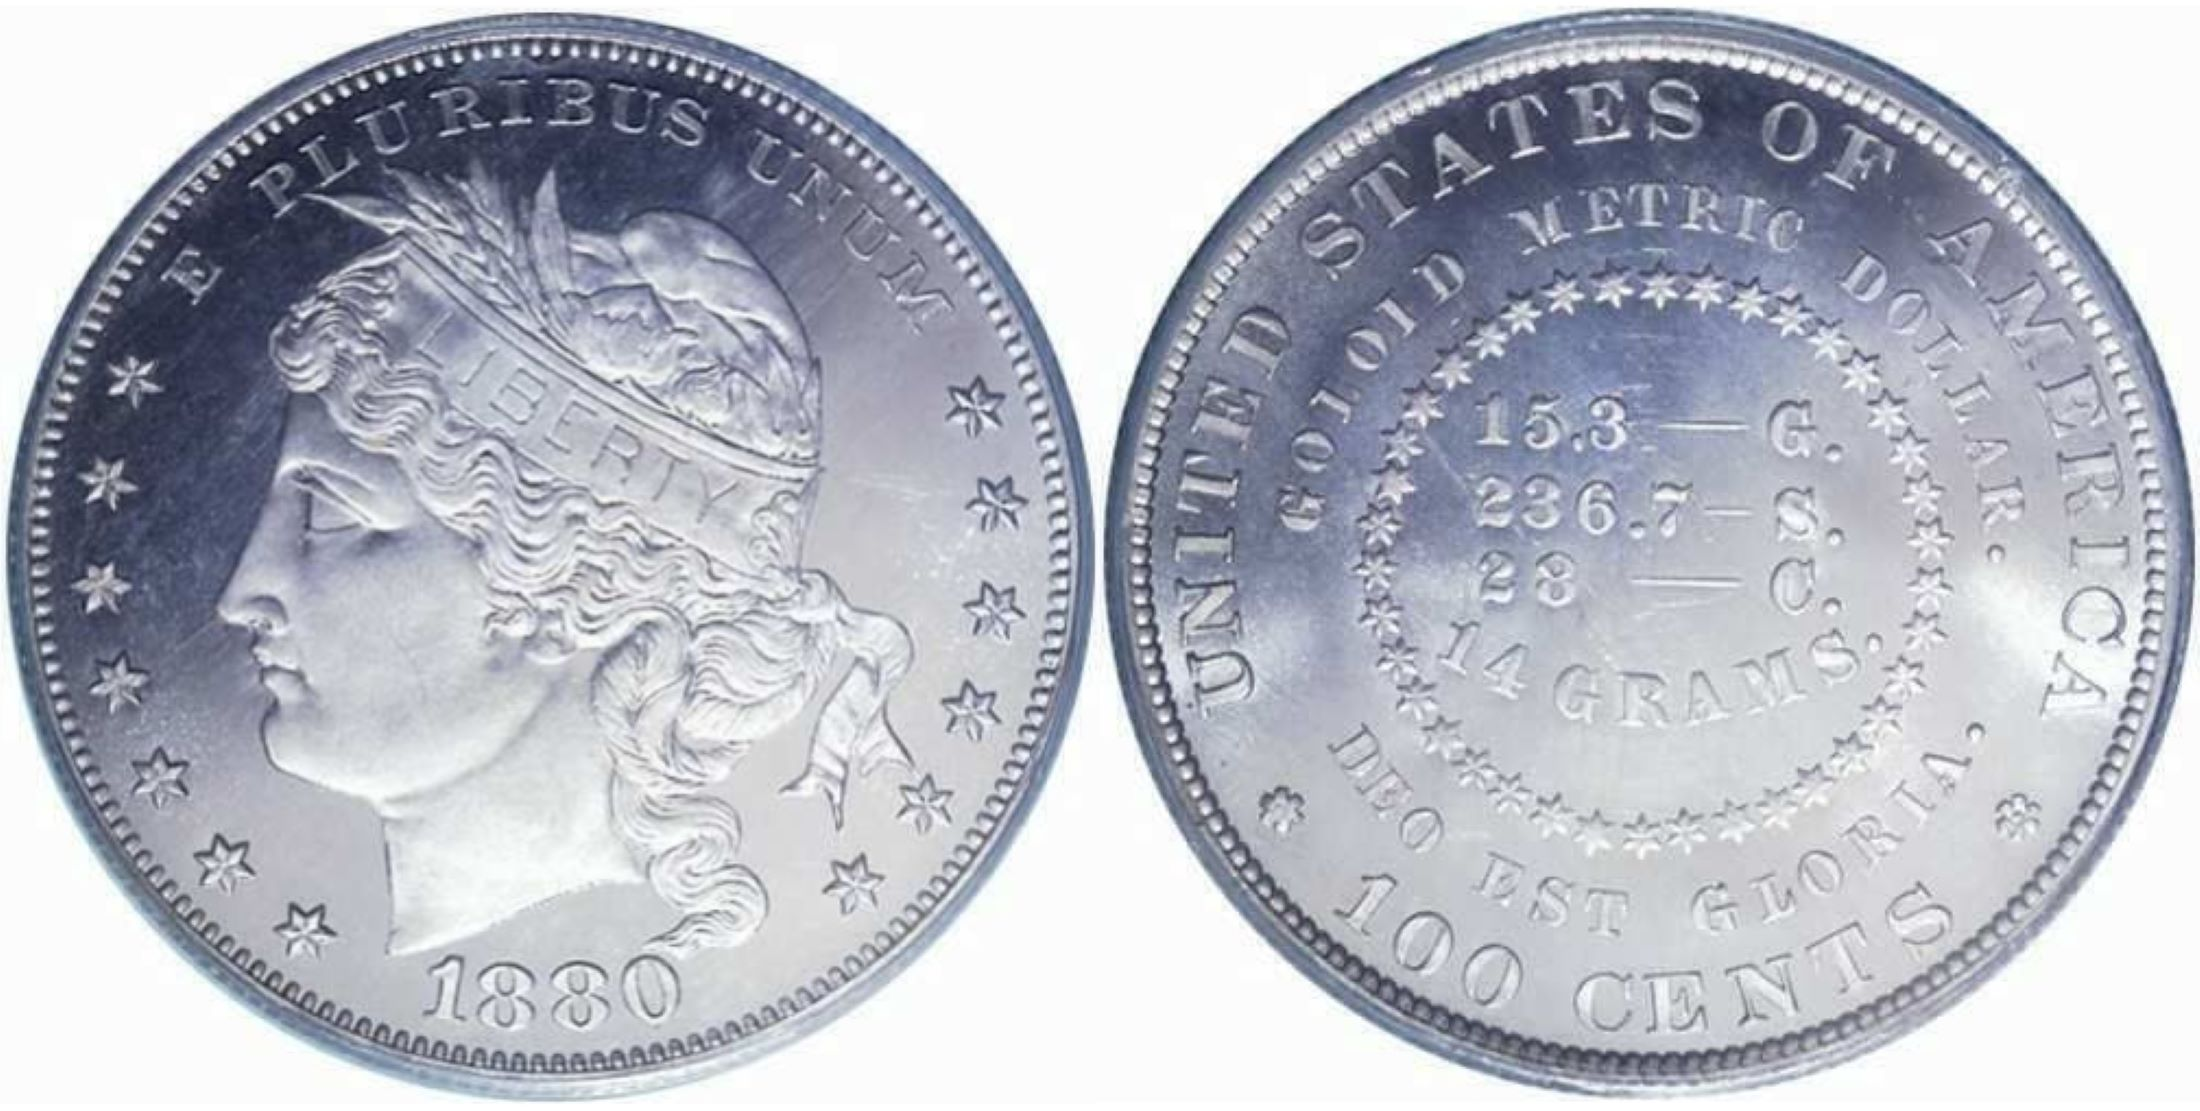 "PCGS PR64<BR>Image courtesy of <a href=""http://www.ha.com"" target=""_blank"">Heritage Numismatic Auctions</a>"